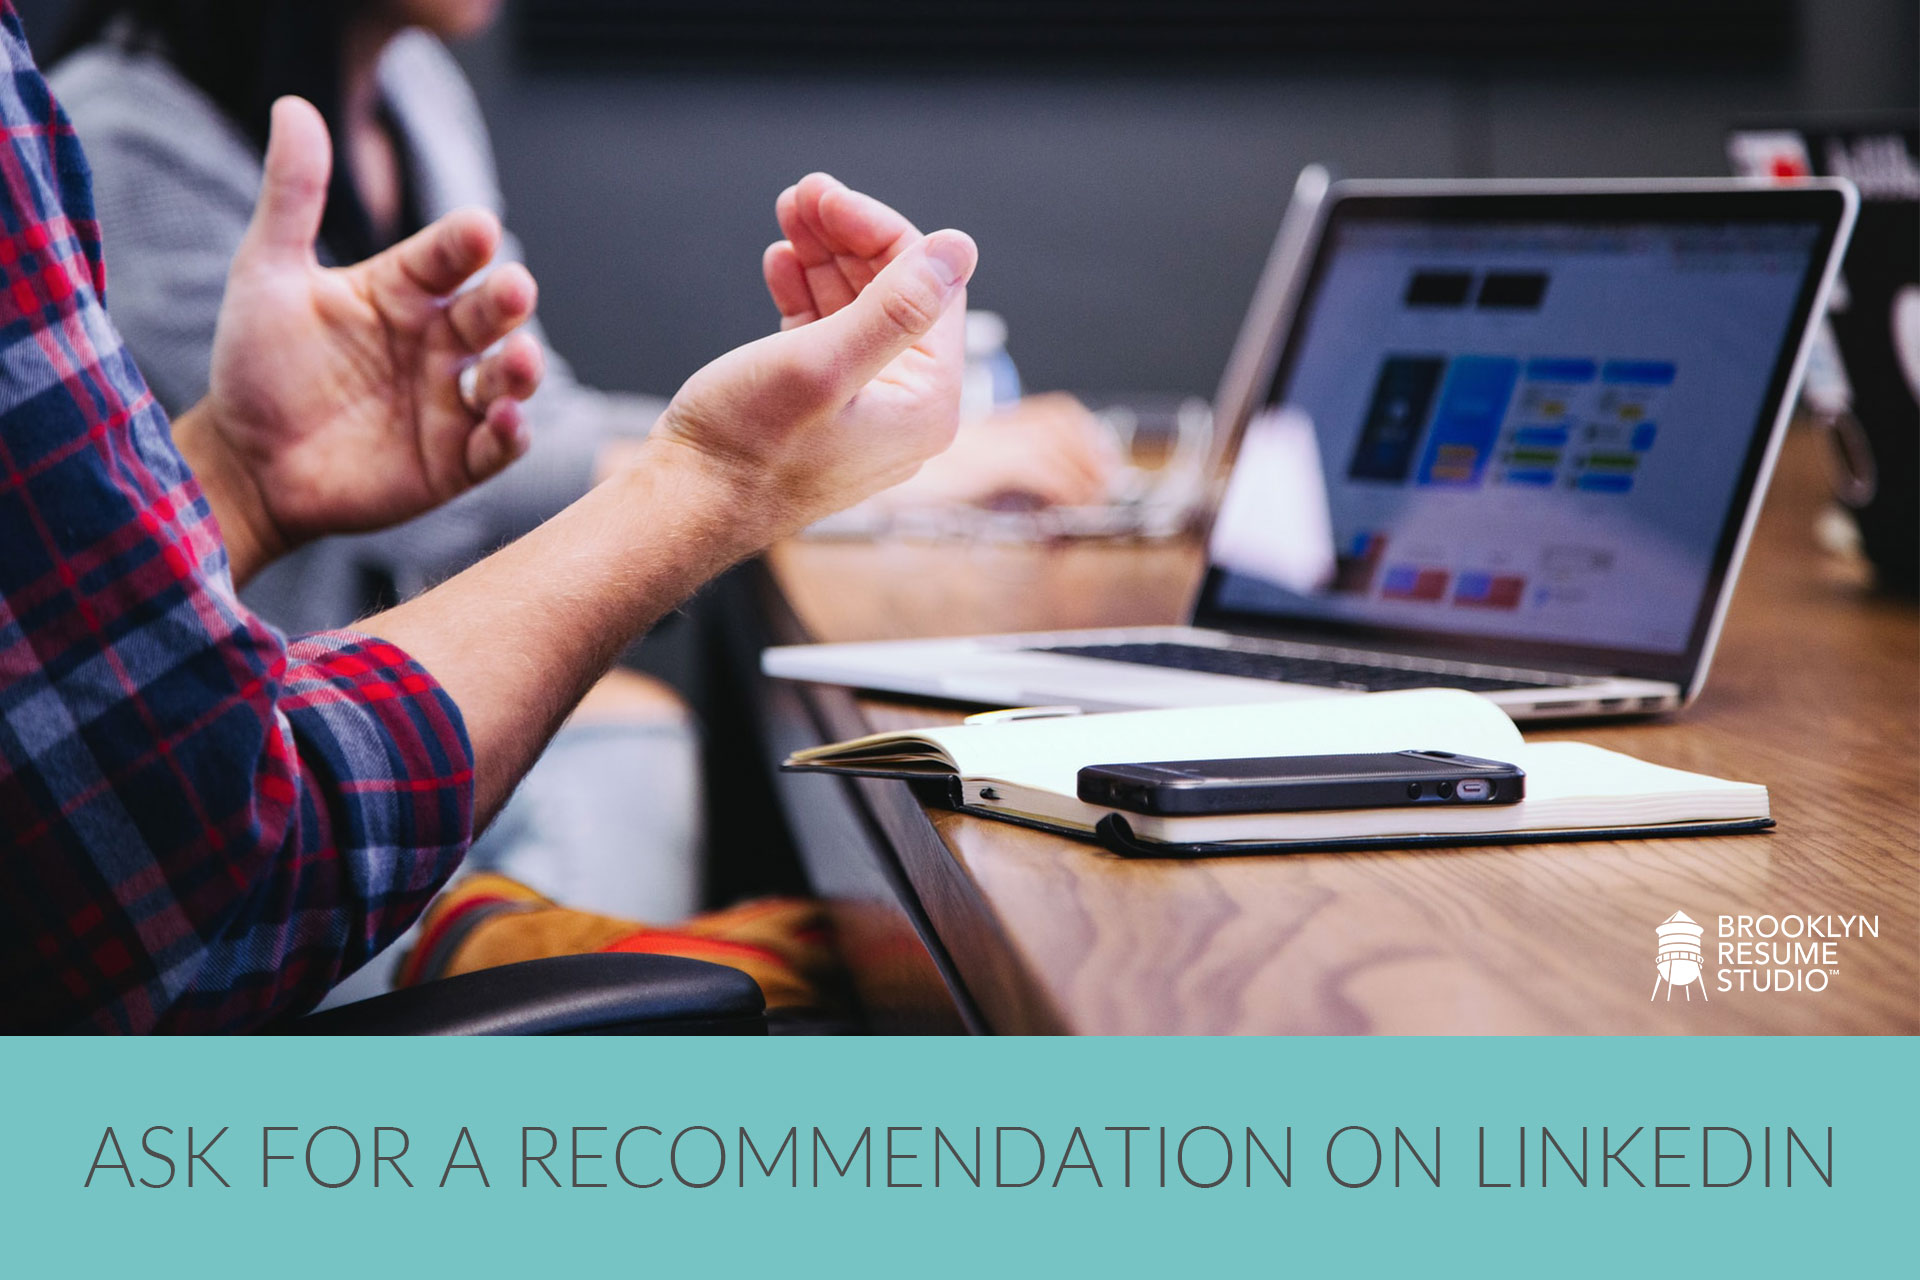 ask someone for a recommendation on LinkedIn